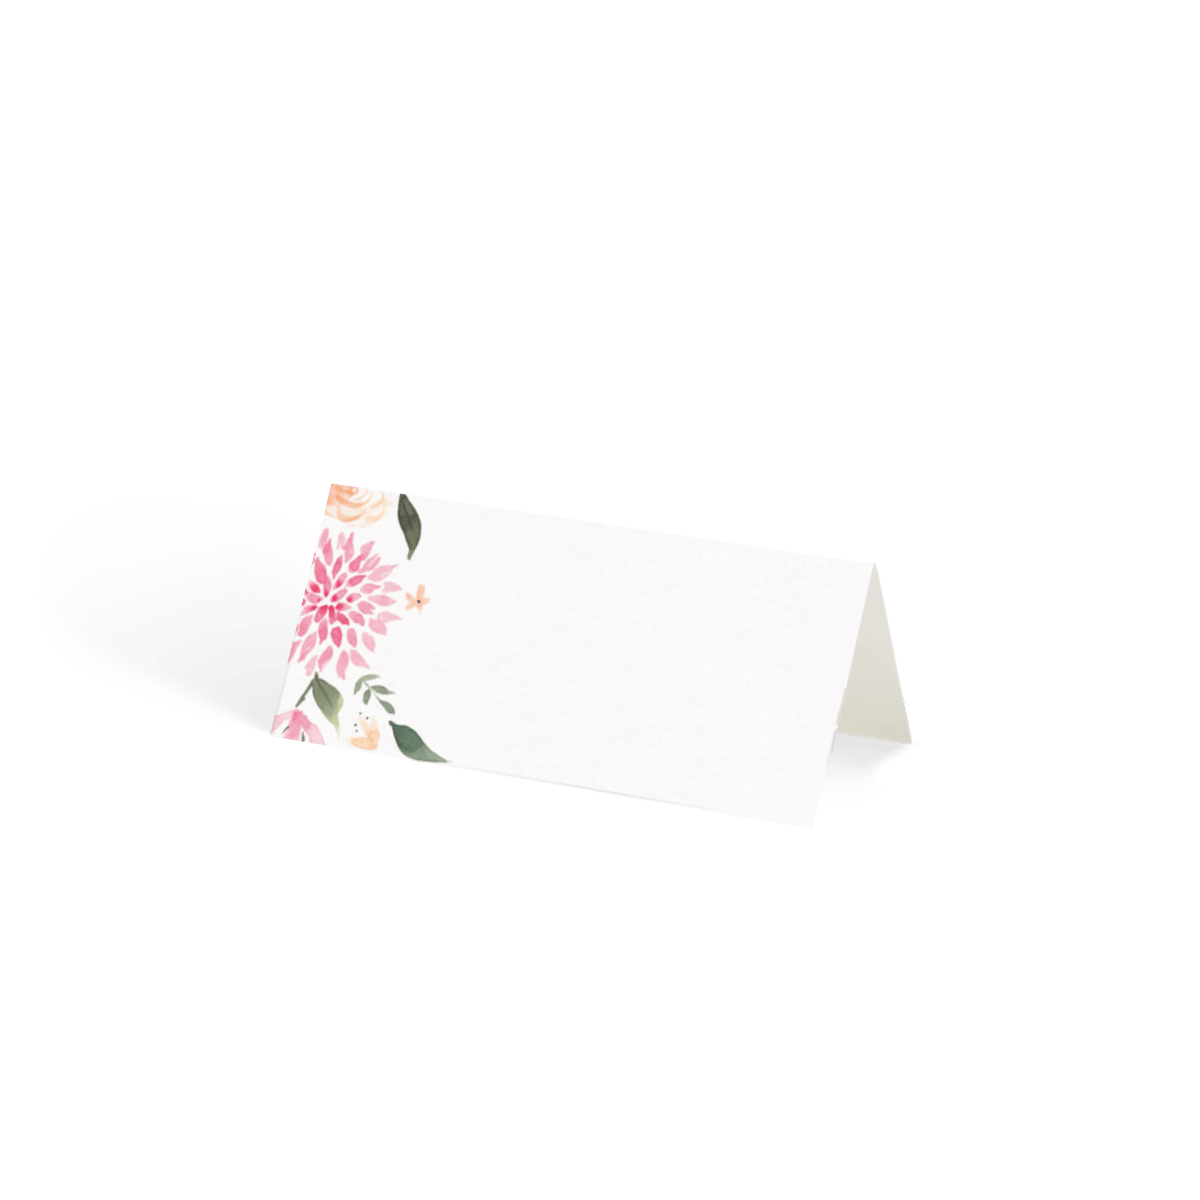 Https%3a%2f%2fwww.papier.com%2fproduct image%2f81178%2f8%2fdahlia and ranunculus 19432 front 1561641277.png?ixlib=rb 1.1